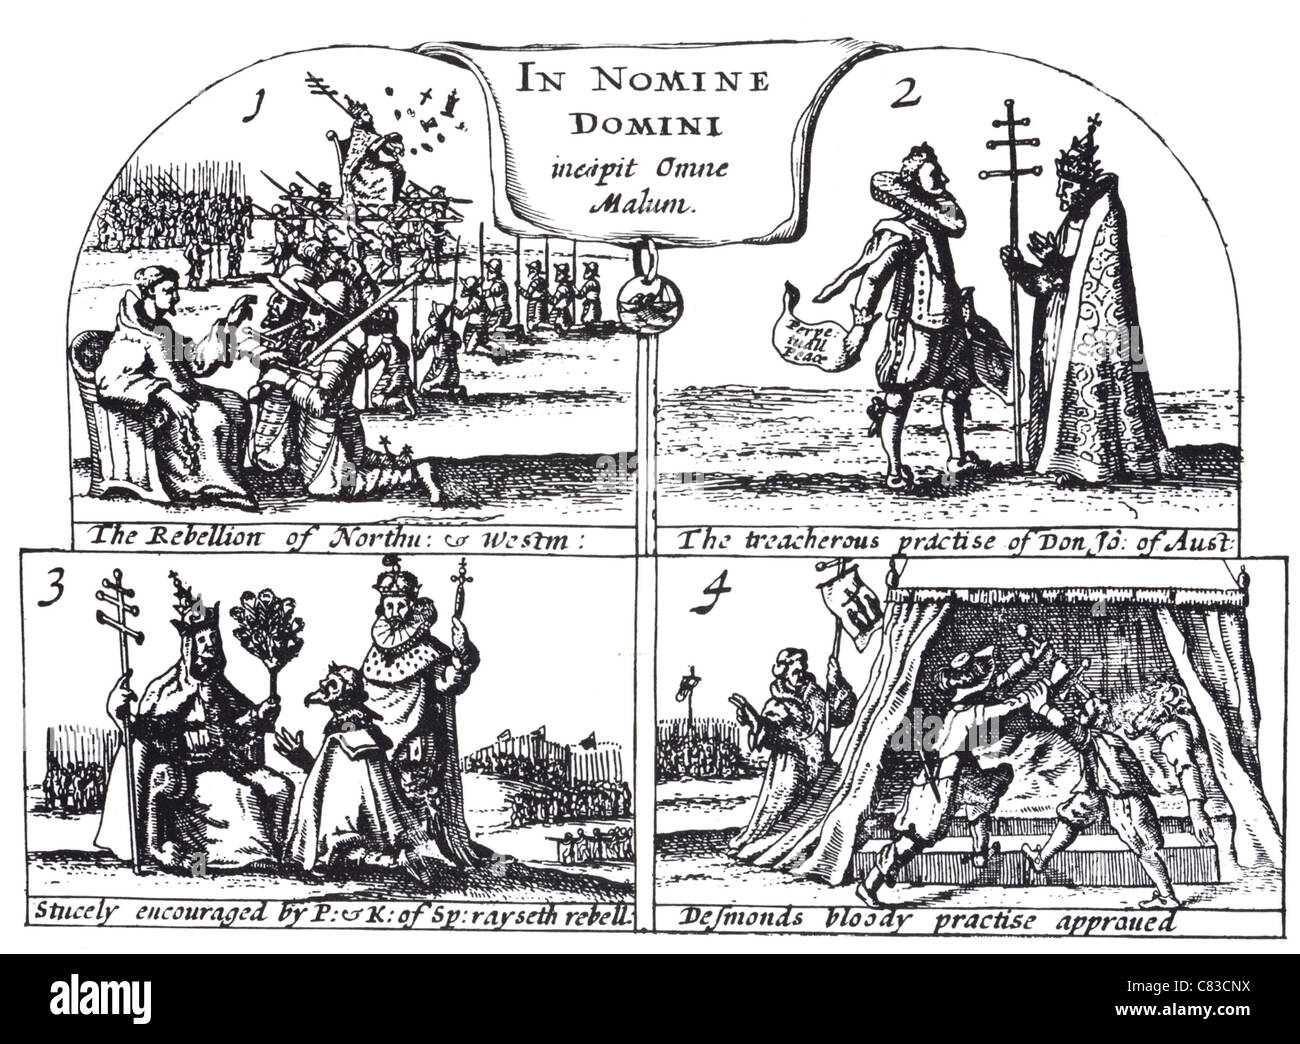 A THANKFUL REMEMBRANCE OF GOD'S MERCY published by George Carleton in 1624 showing Catholic plots against Elizabeth - Stock Image